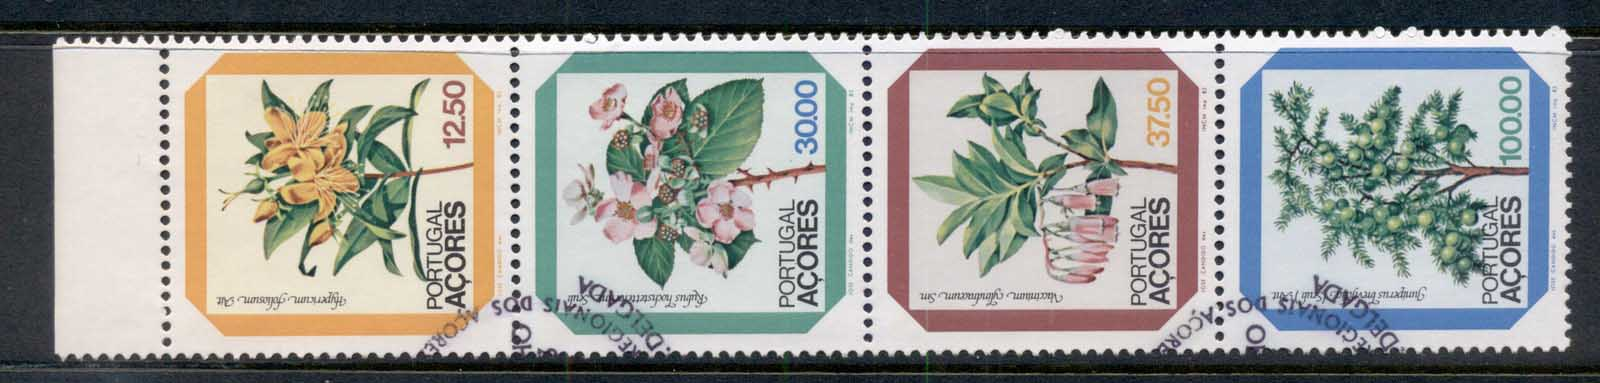 Azores 1983 Flowers booklet pane FU